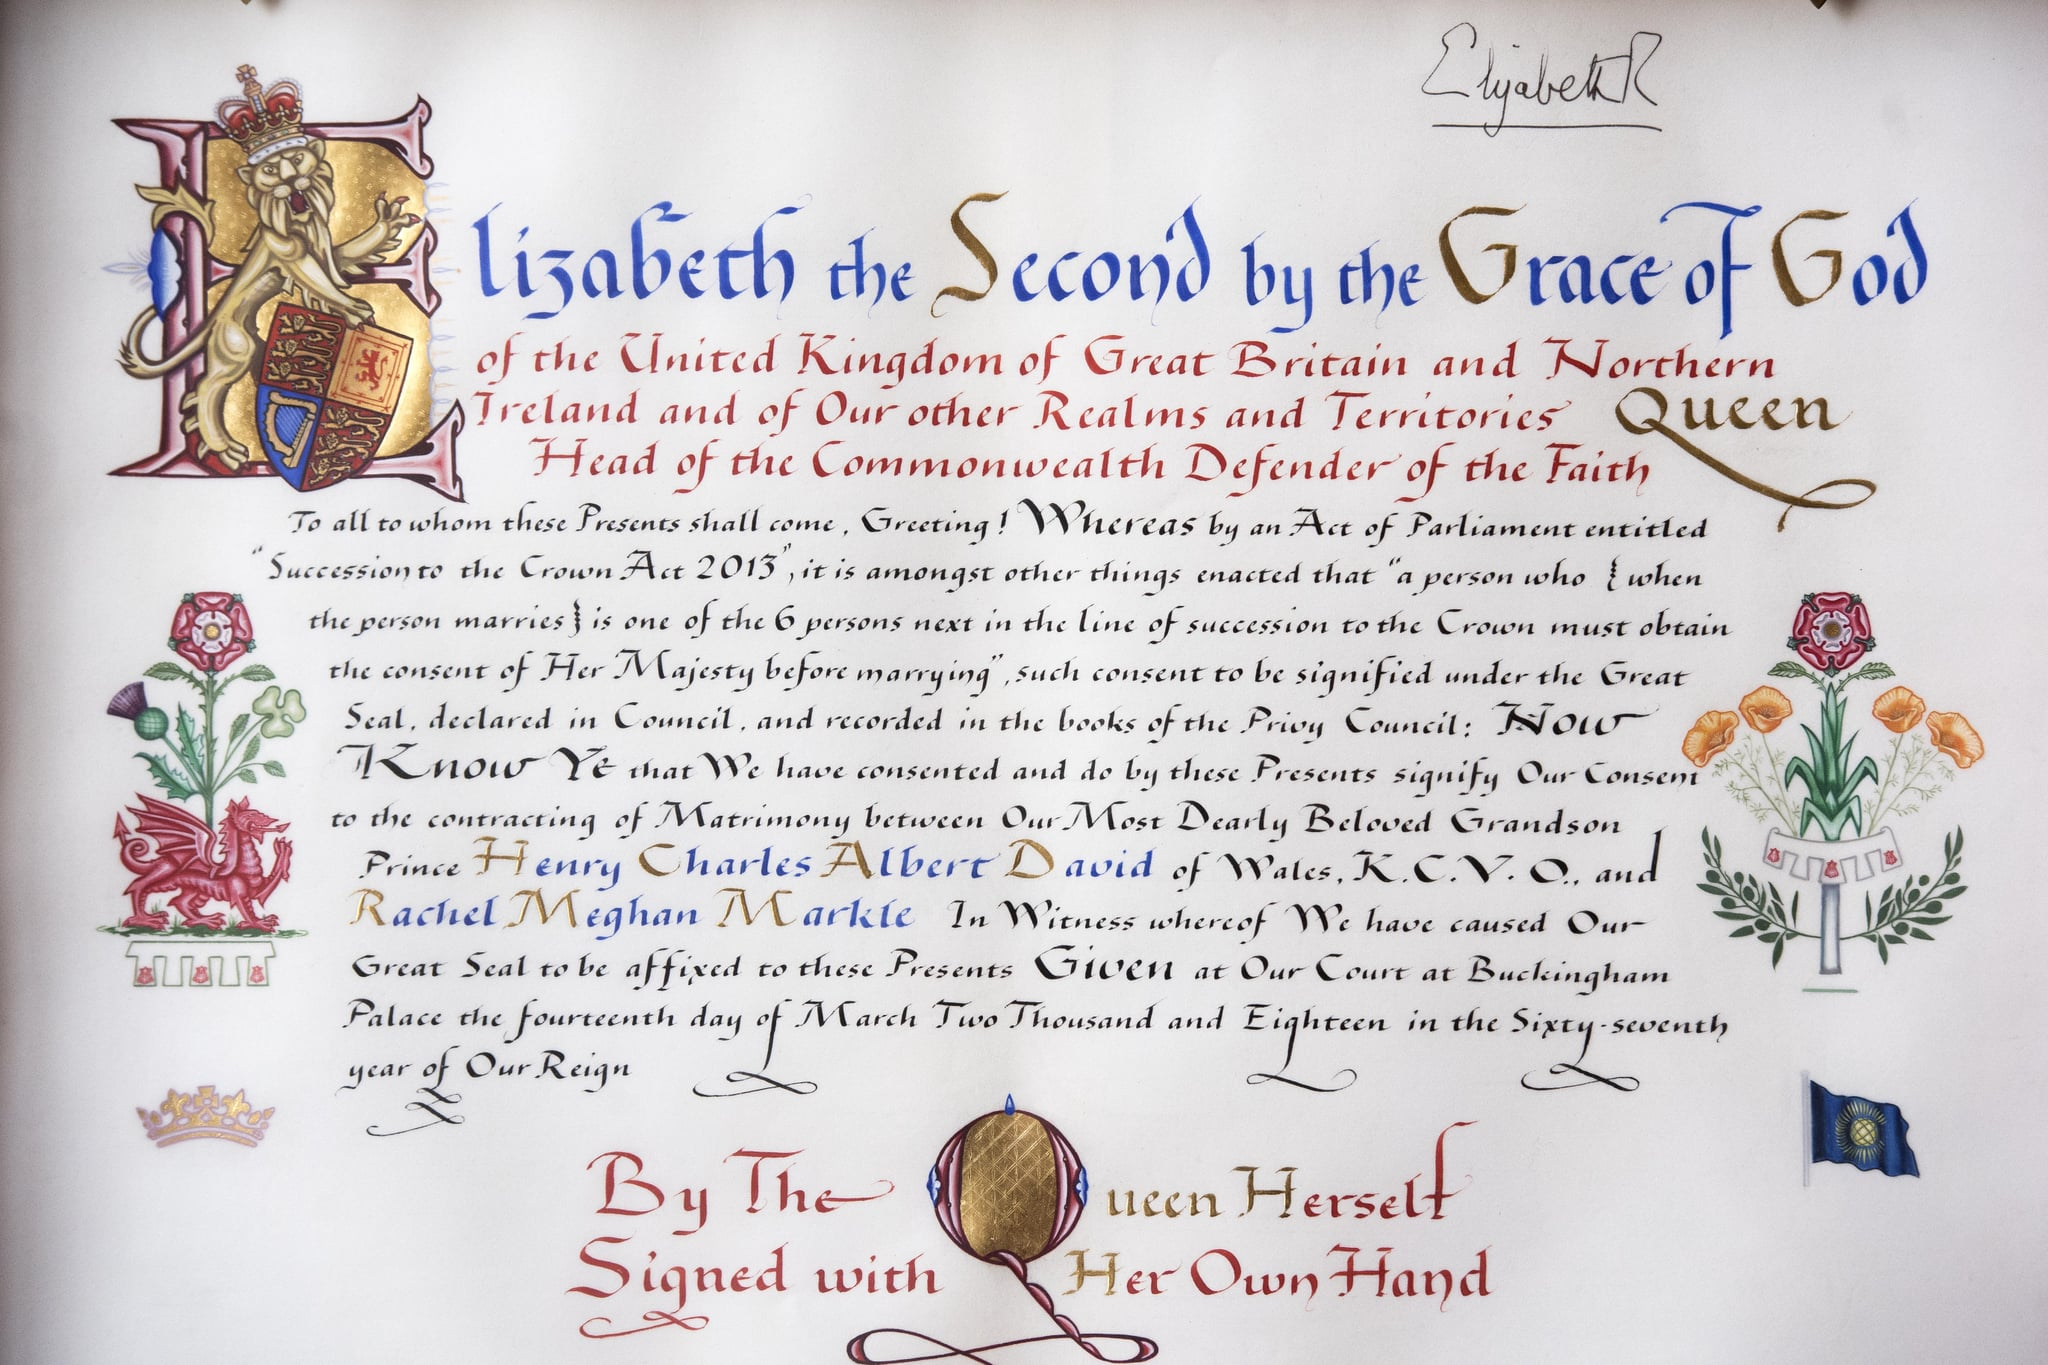 A picture taken at Buckingham Palace in London on April 12, 2018 shows the text and marginalia of the Instrument of Consent, an official State document that records the Queen's formal consent to Prince Harry's forthcoming marriage to Meghan Markle. - The Instrument of Consent is a hand-written document which records Britain's Queen Elizabeth II's consent to the marriage of Prince Harry and Meghan Markle. The document is hand-written and illuminated on vellum and sealed with the Great Seal of the Realm. The Queen's signature,